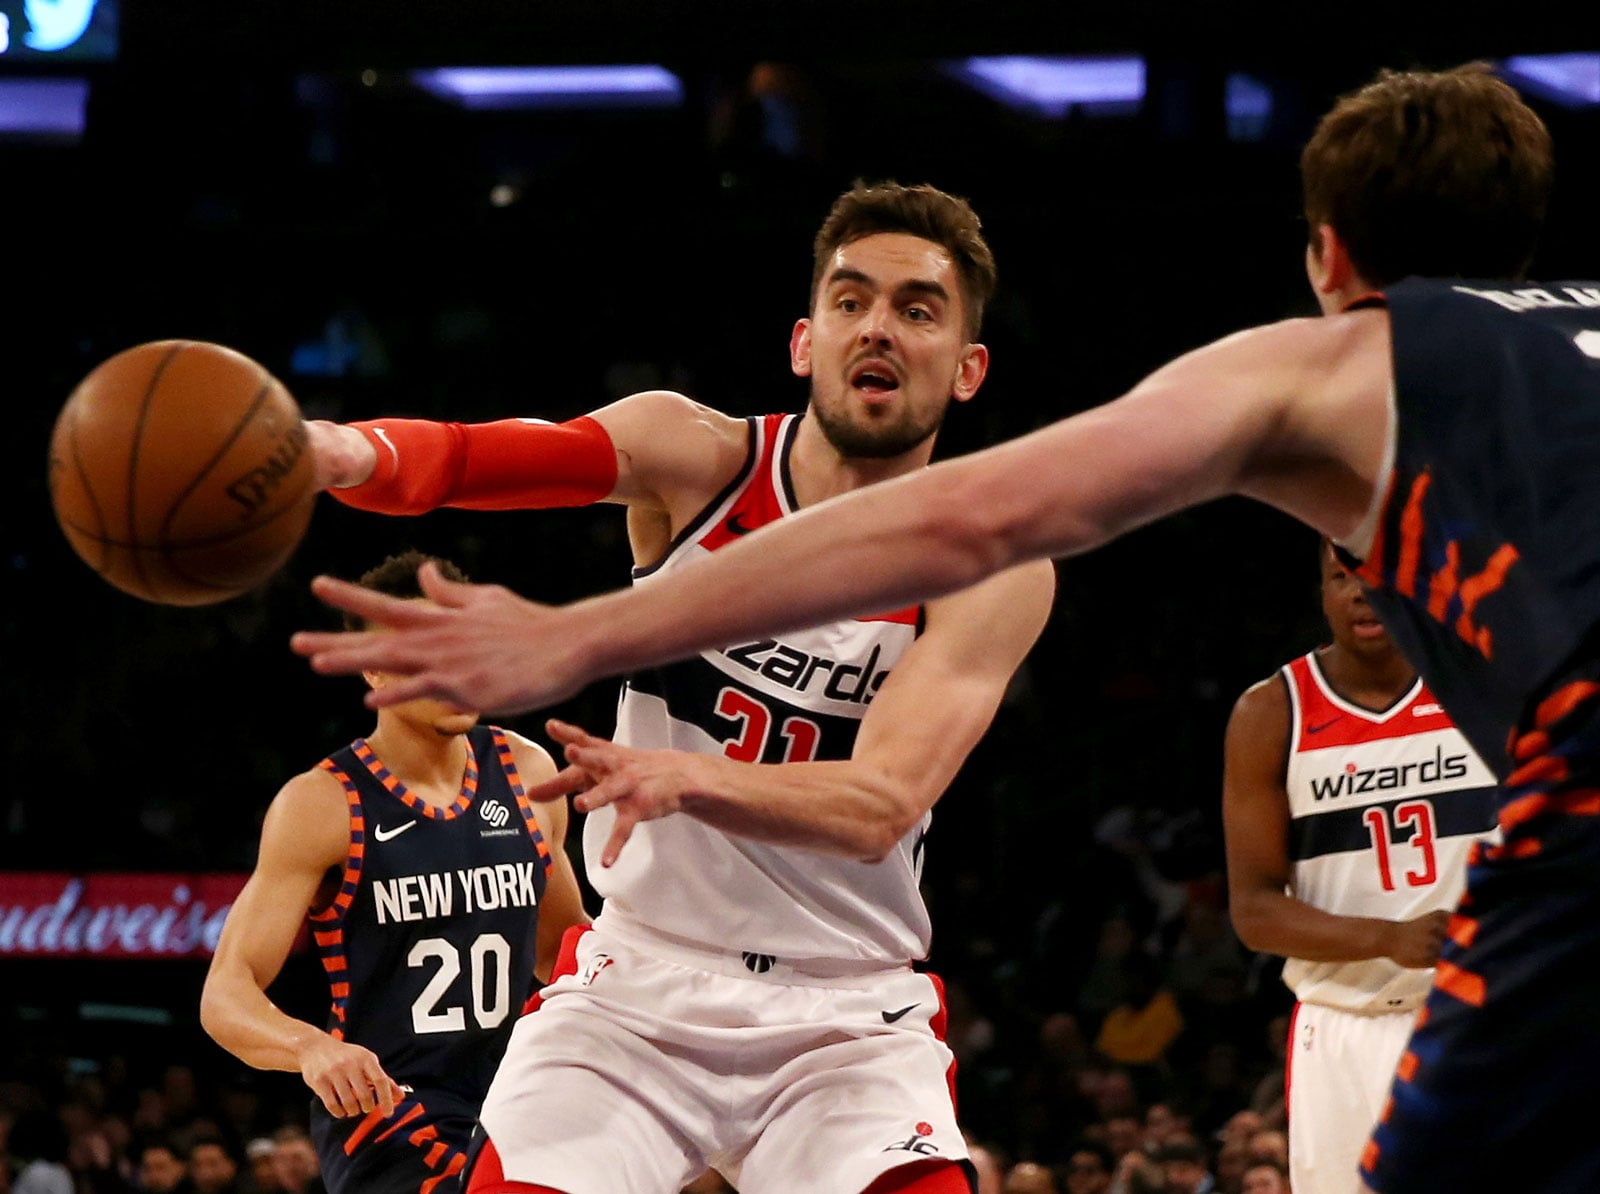 Tomas Satoransky #31 of the Washington Wizards passes the ball as Mario Hezonja #8 of the New York Knicks defends at Madison Square Garden on April 07, 2019 in New York City.